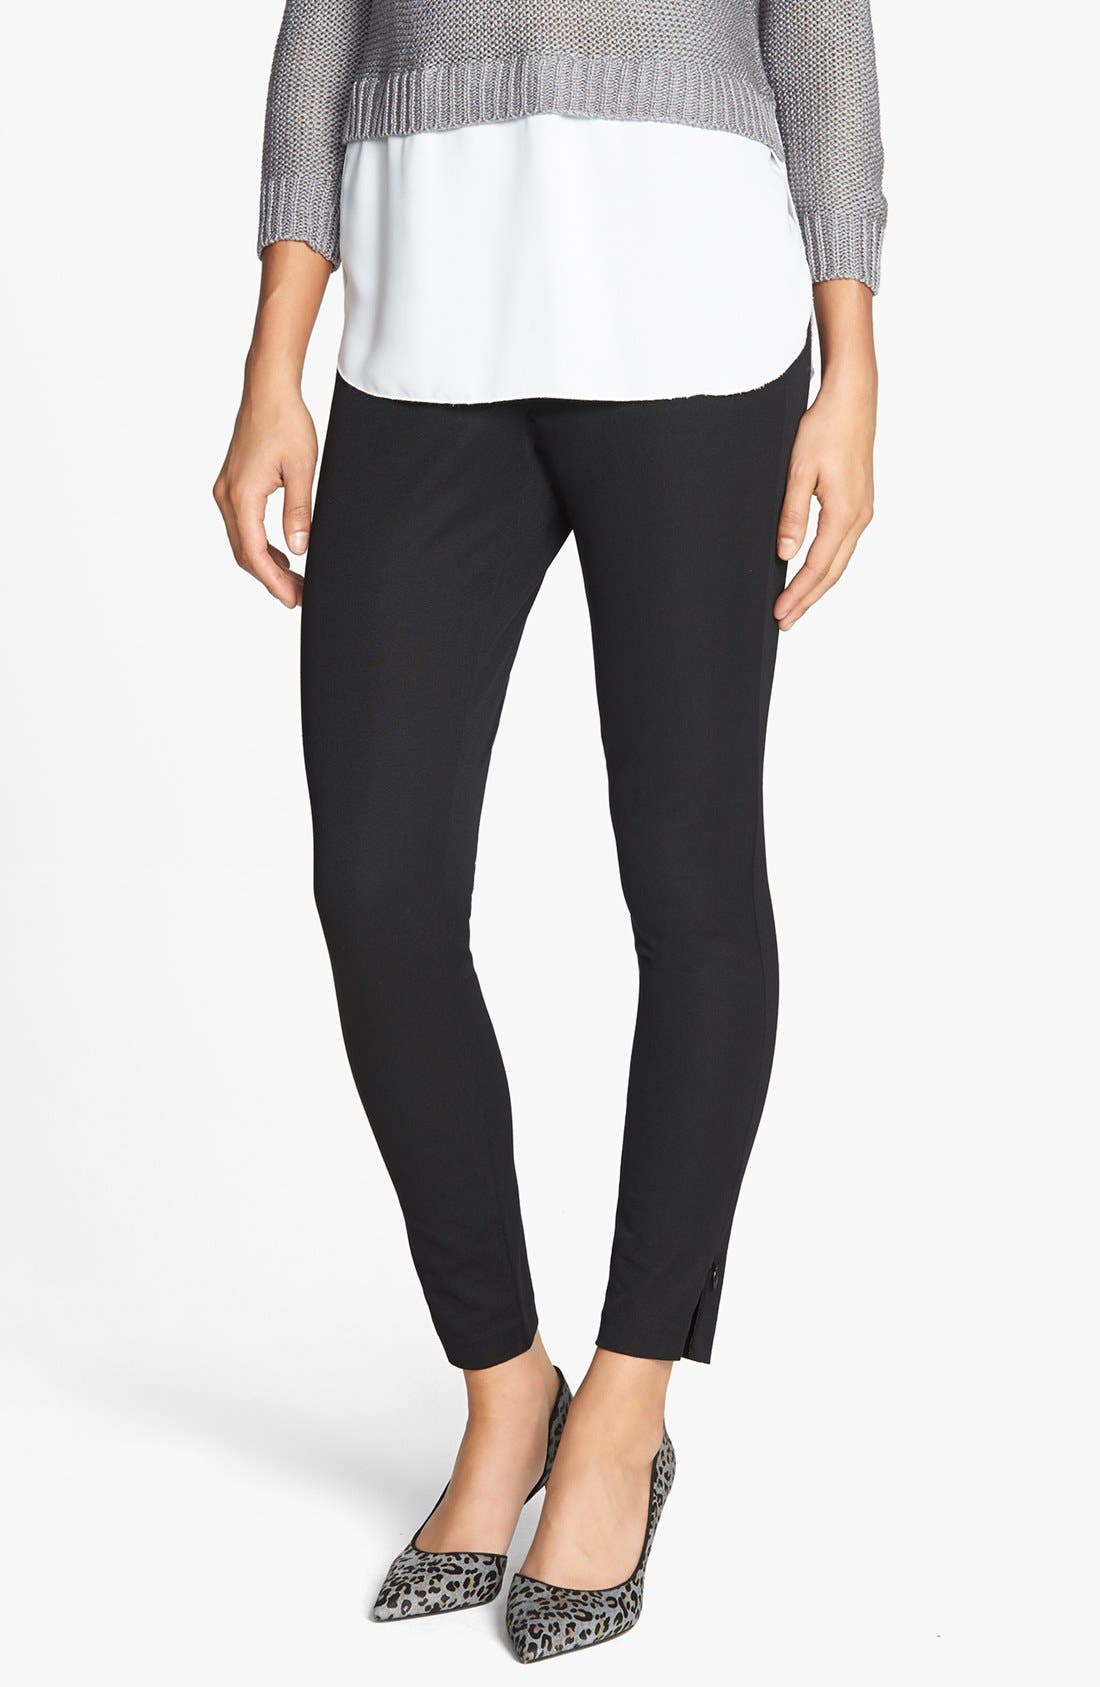 Alternate Image 1 Selected - SPANX® 'Ready to Wow' Stretch Twill Control Top Leggings